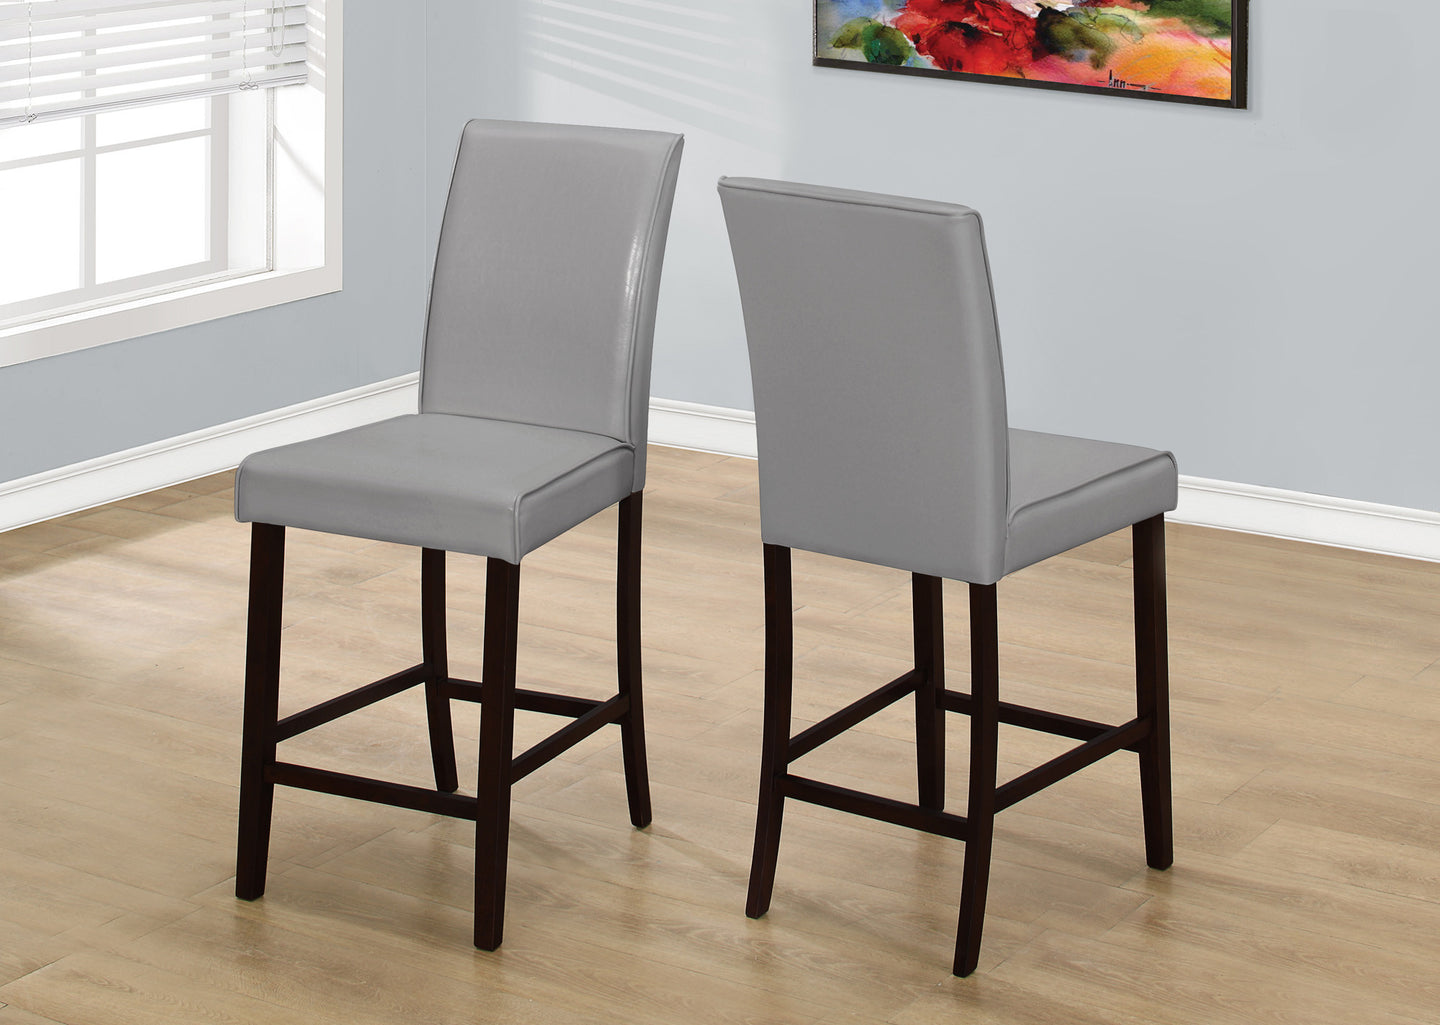 Astonishing Candace Basil Furniture Counter Stools 2Pc Set Grey Pabps2019 Chair Design Images Pabps2019Com